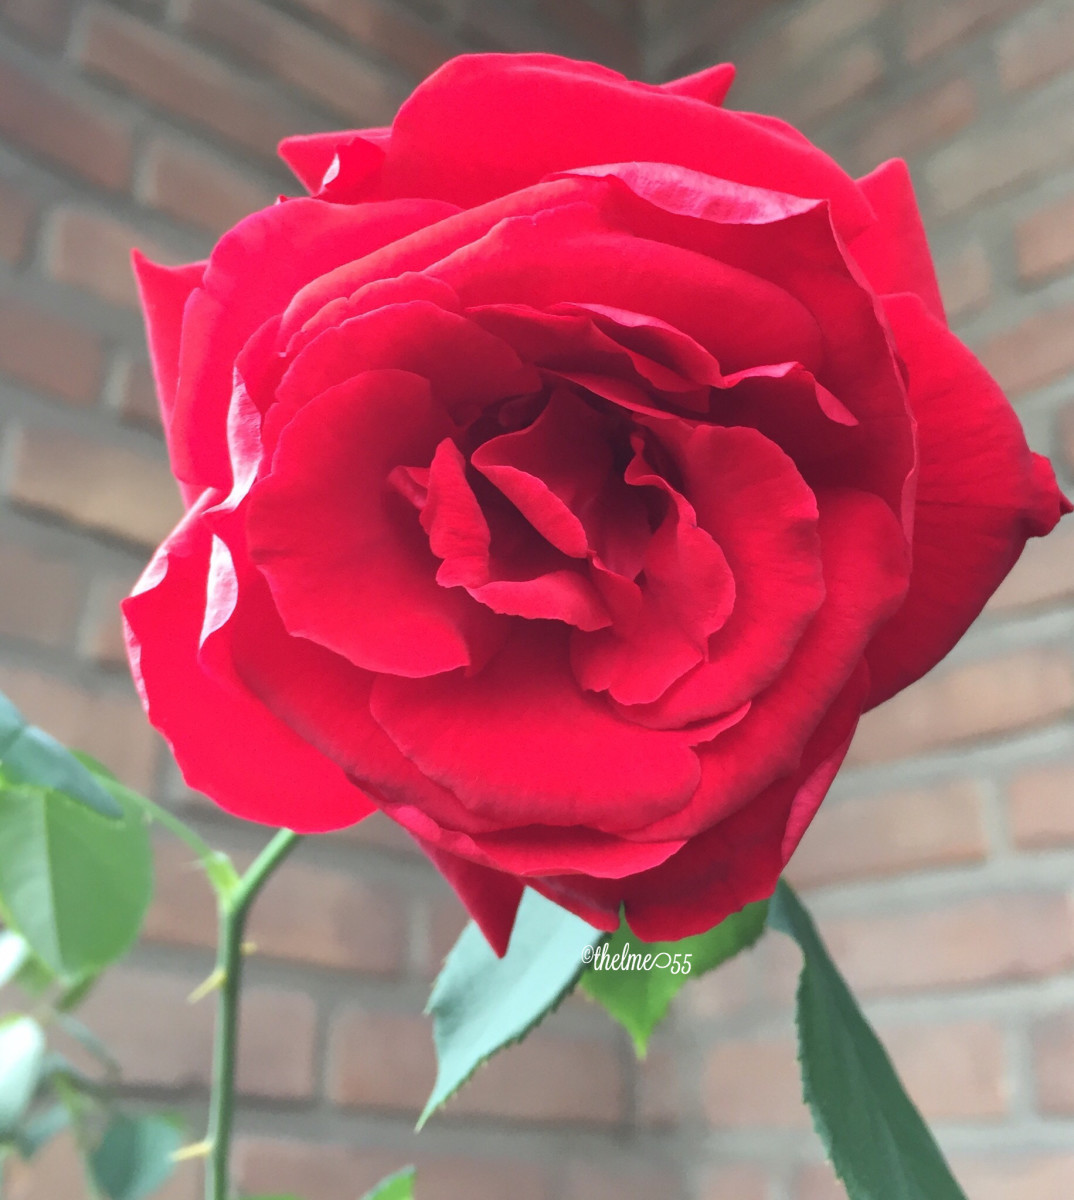 Gorgeous organically grown red rose.